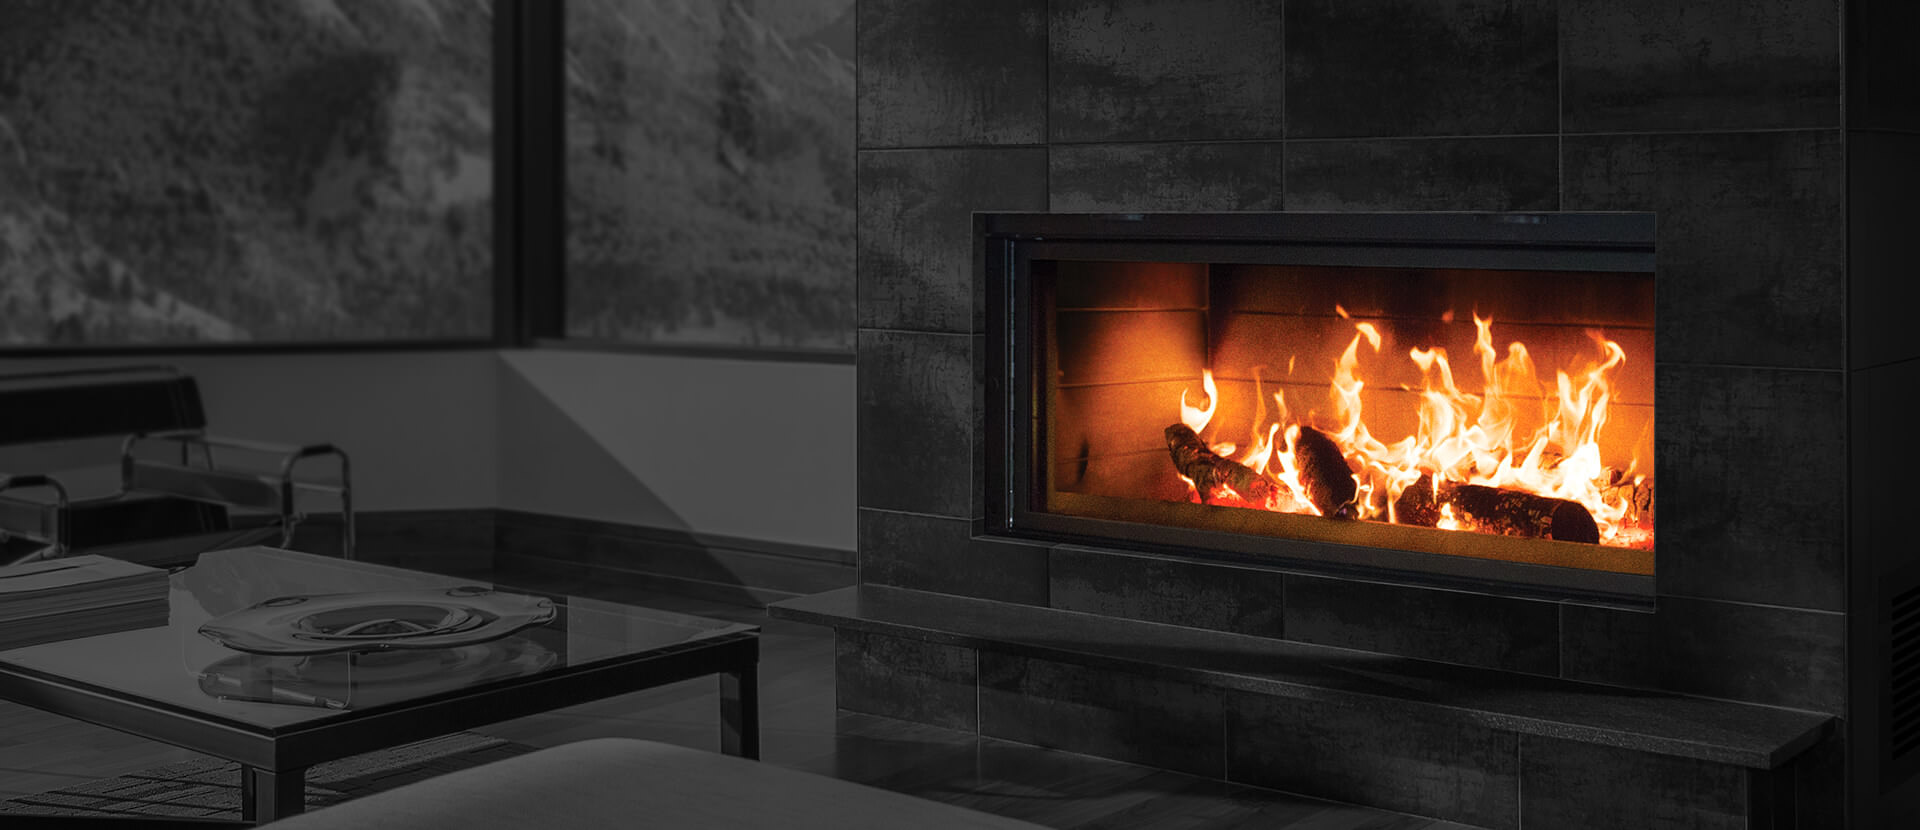 Renaissance Fireplaces - Linear 50 Wood Burning Fireplace ...